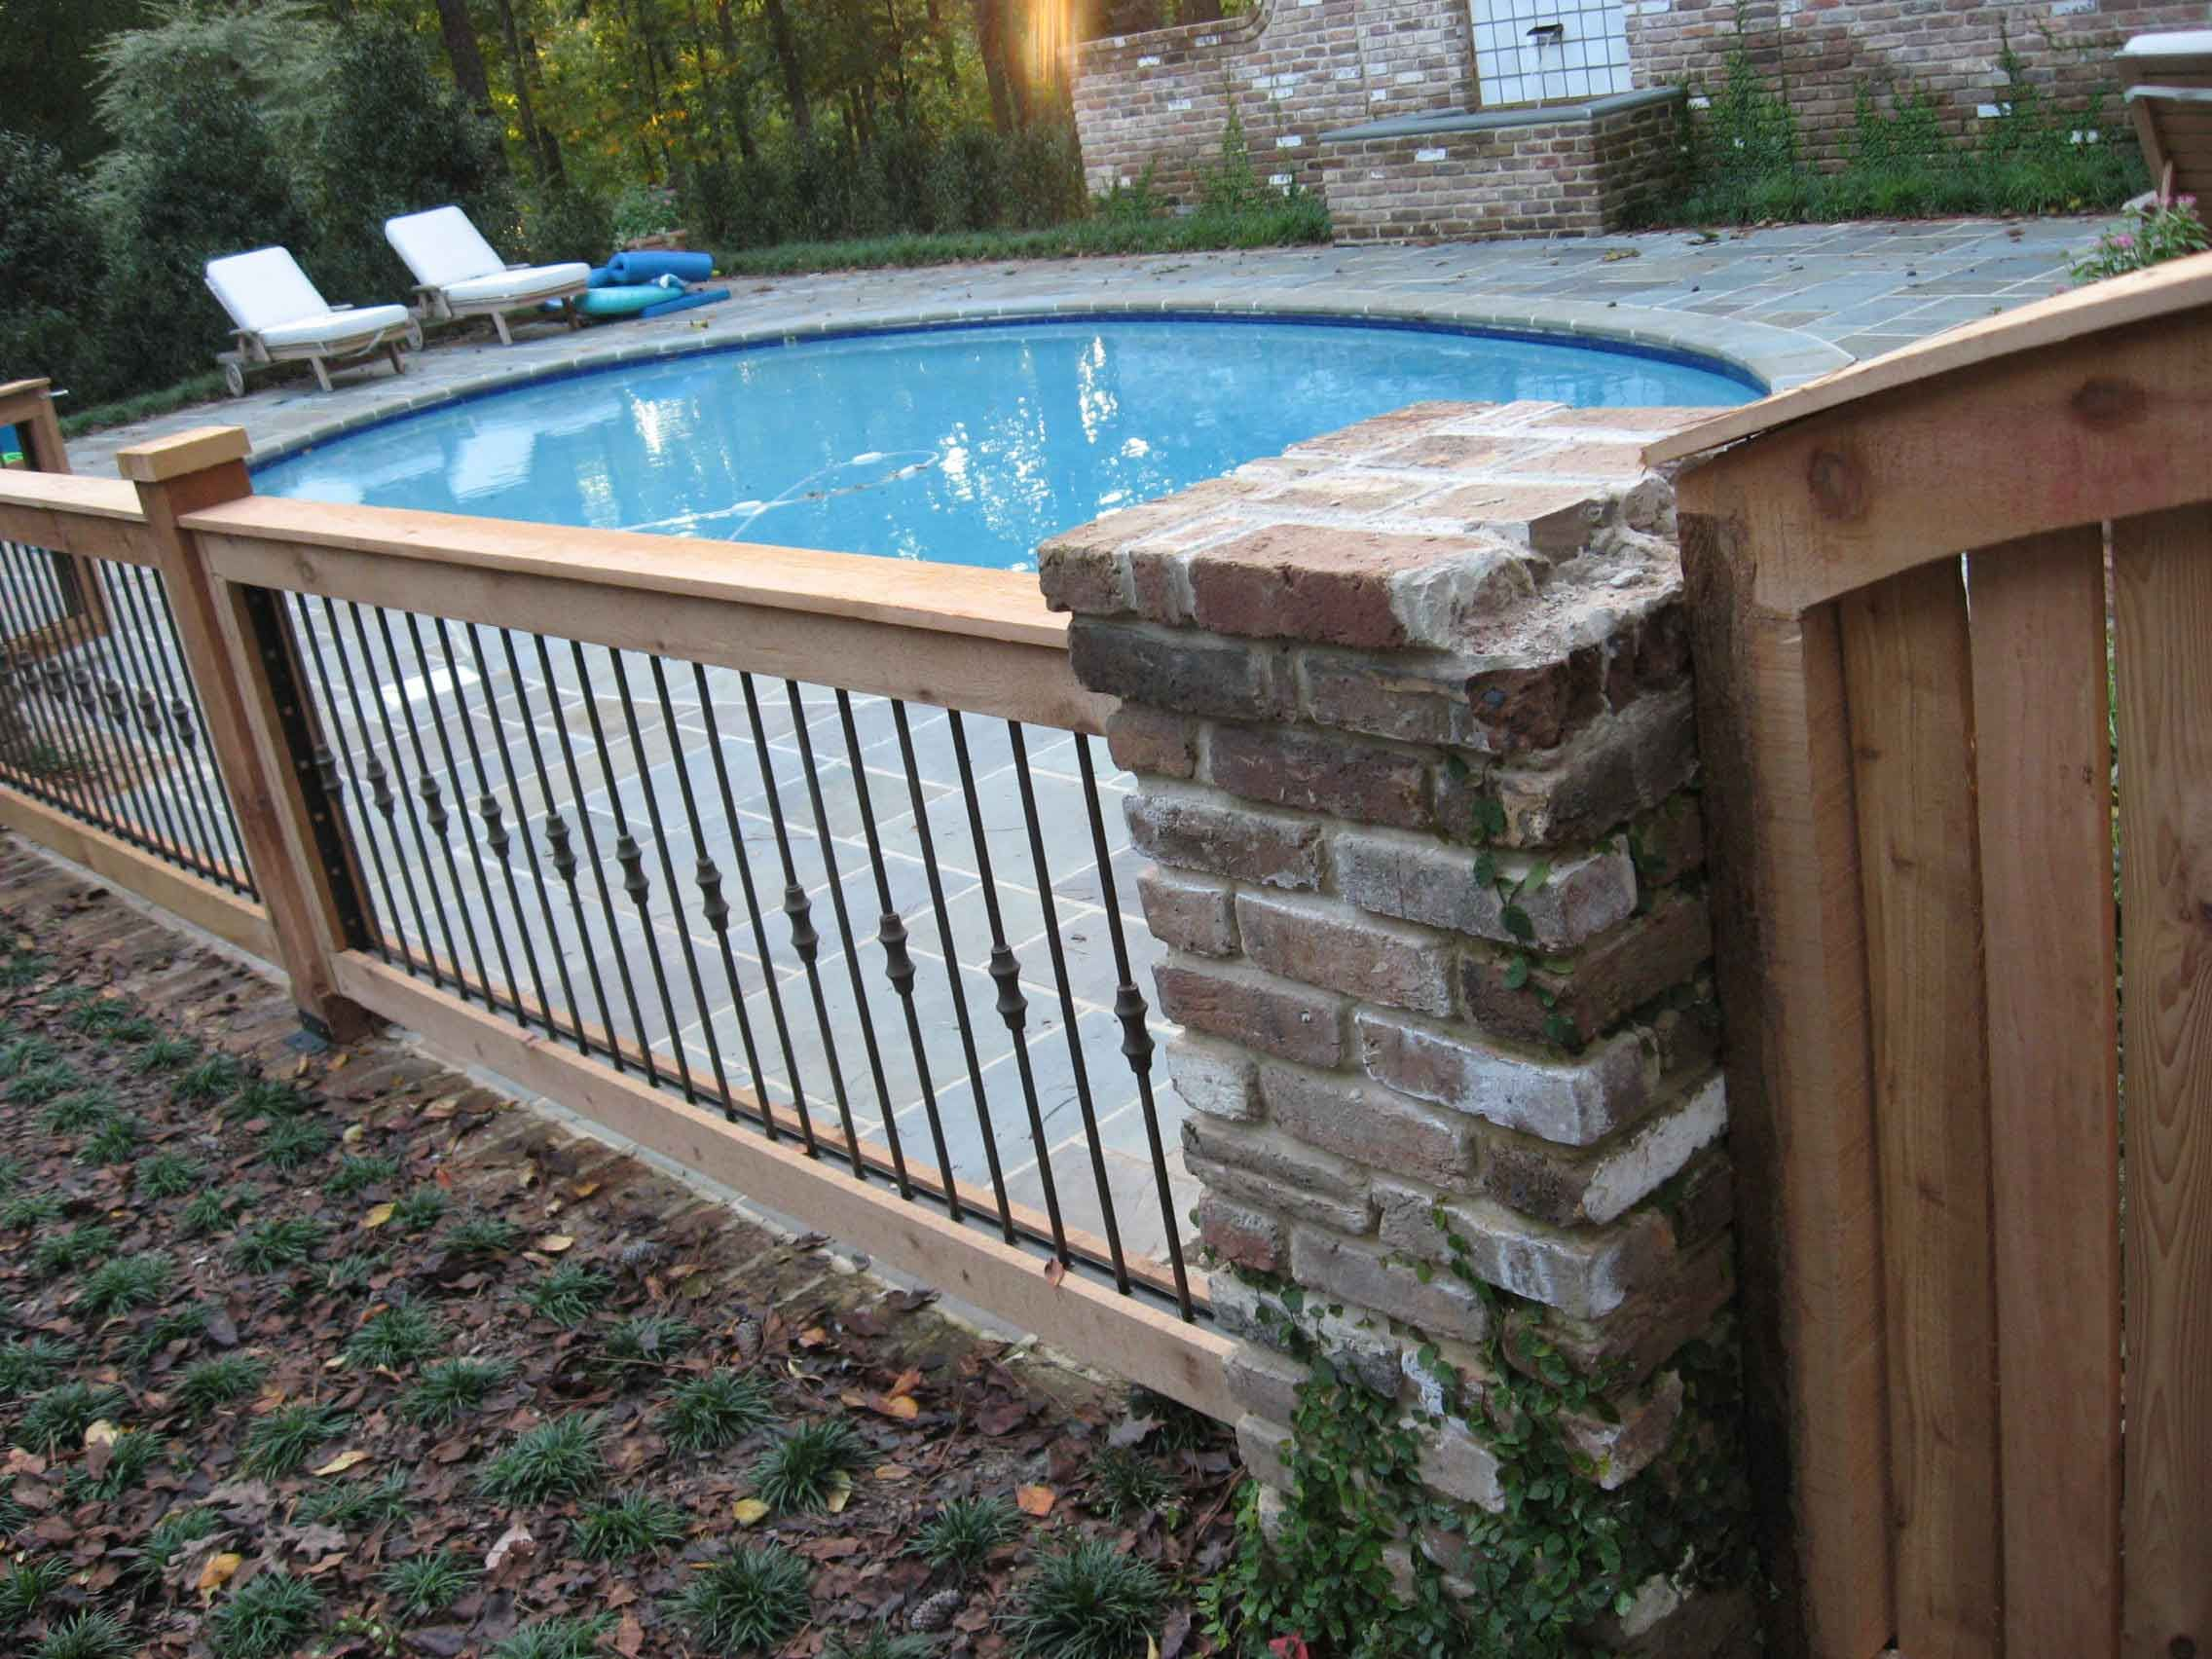 Wrought Iron And Wood Jpg 2272 1704 Fence Around Pool Pool Fence Swimming Pools